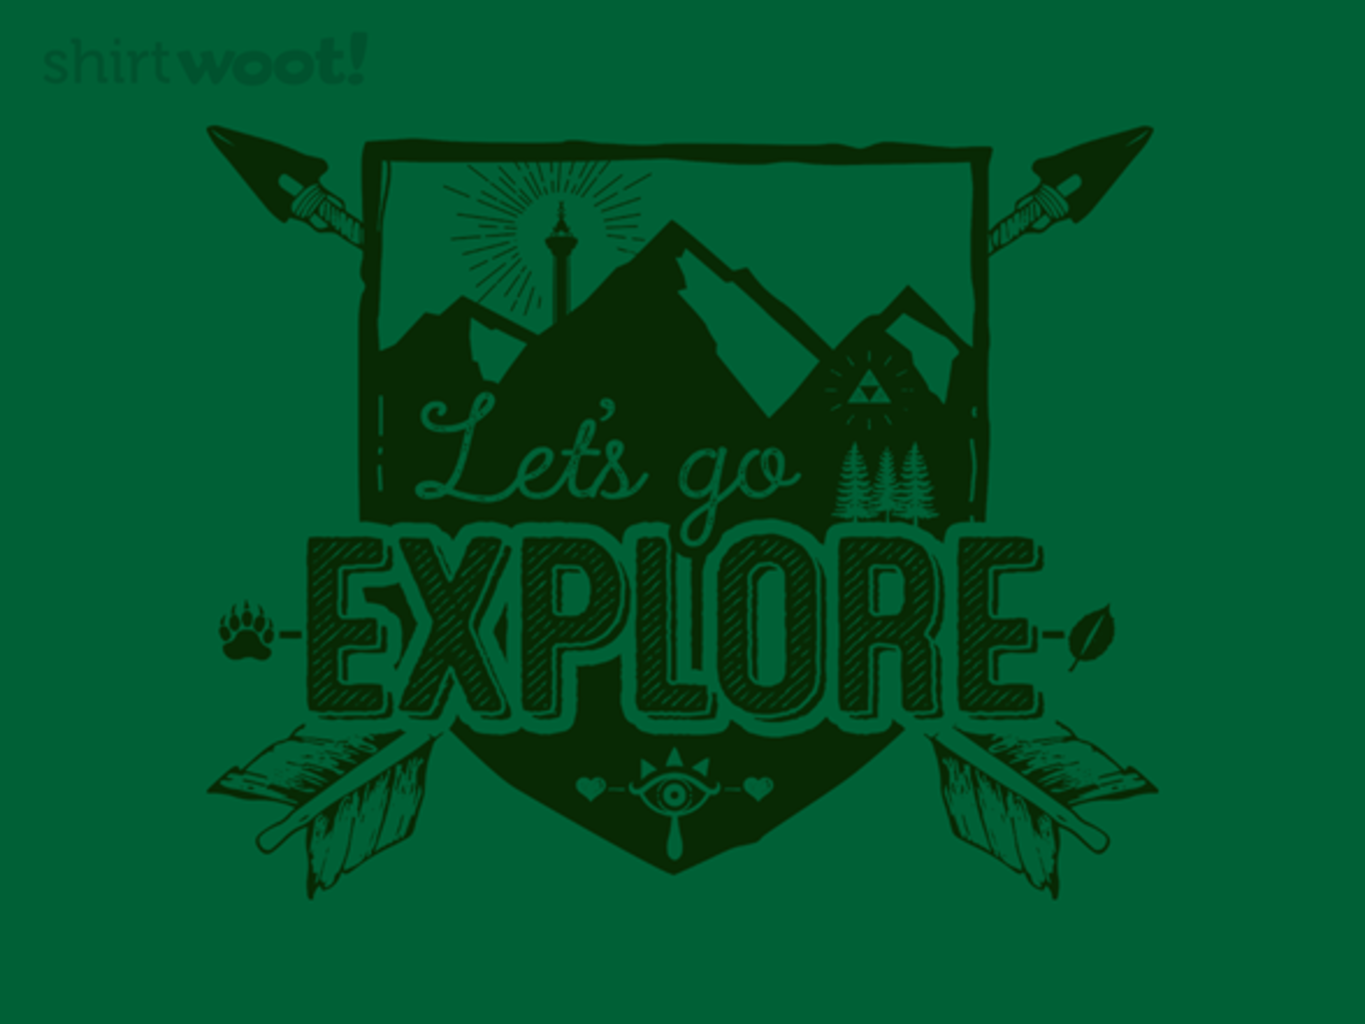 Woot!: Let's Go Explore